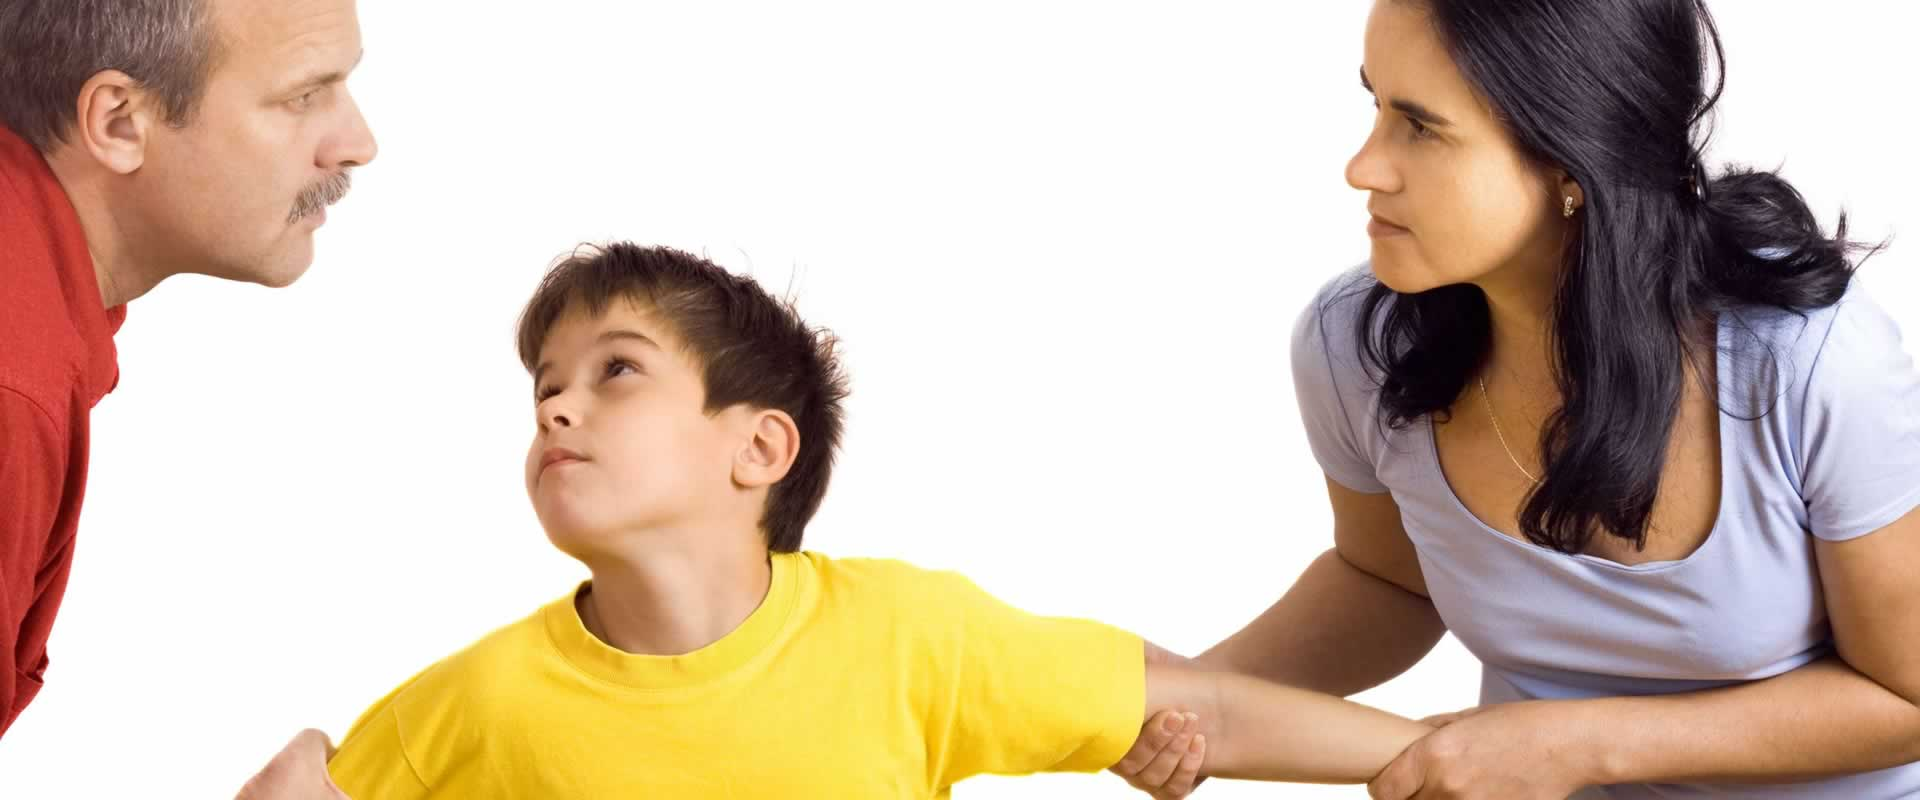 Child Custody Investigator Denver